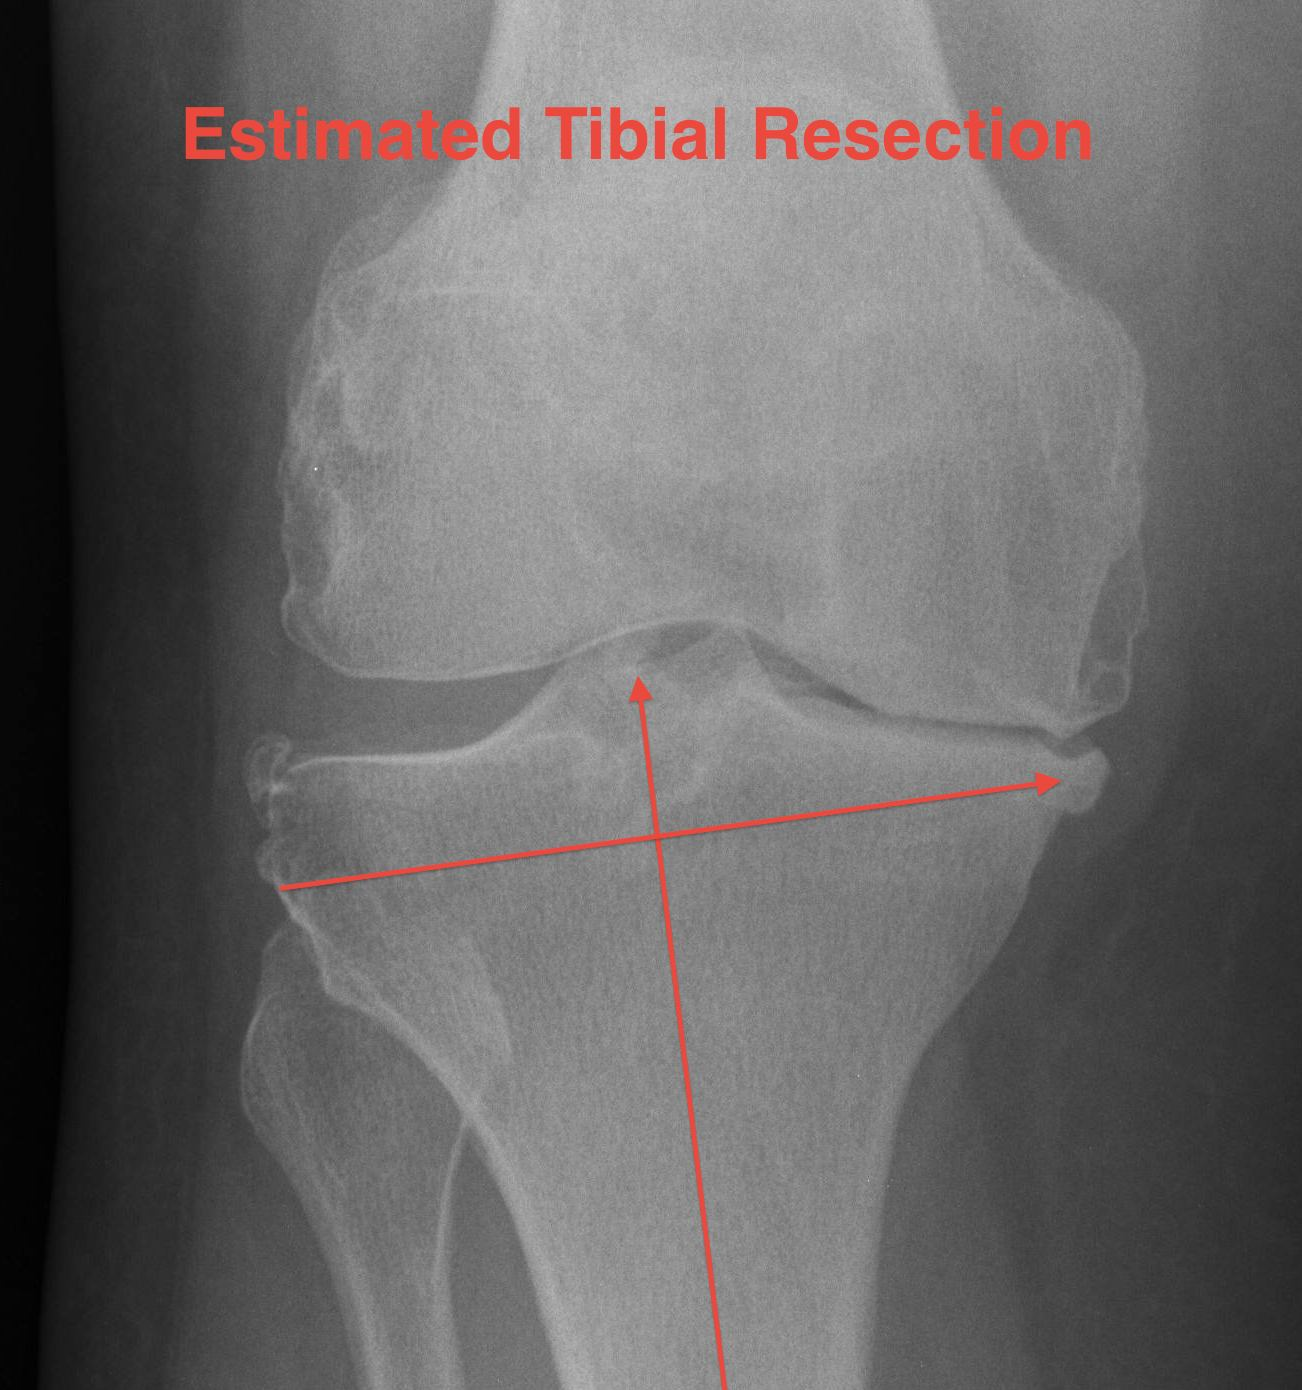 TKR Tibial Cut